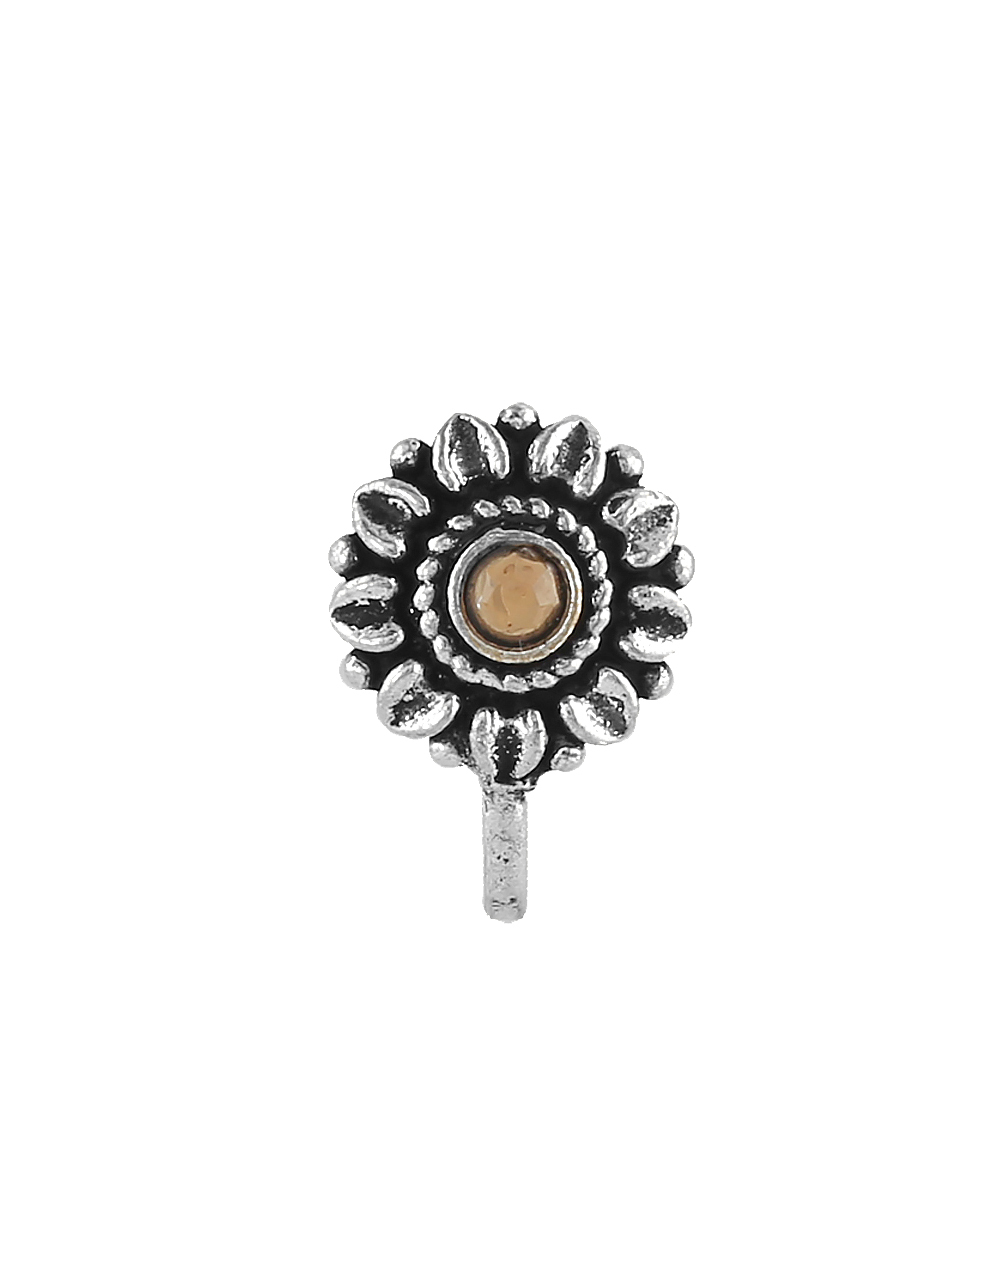 Oxidised Silver Tone Fawn Colour Floral Nose Stud